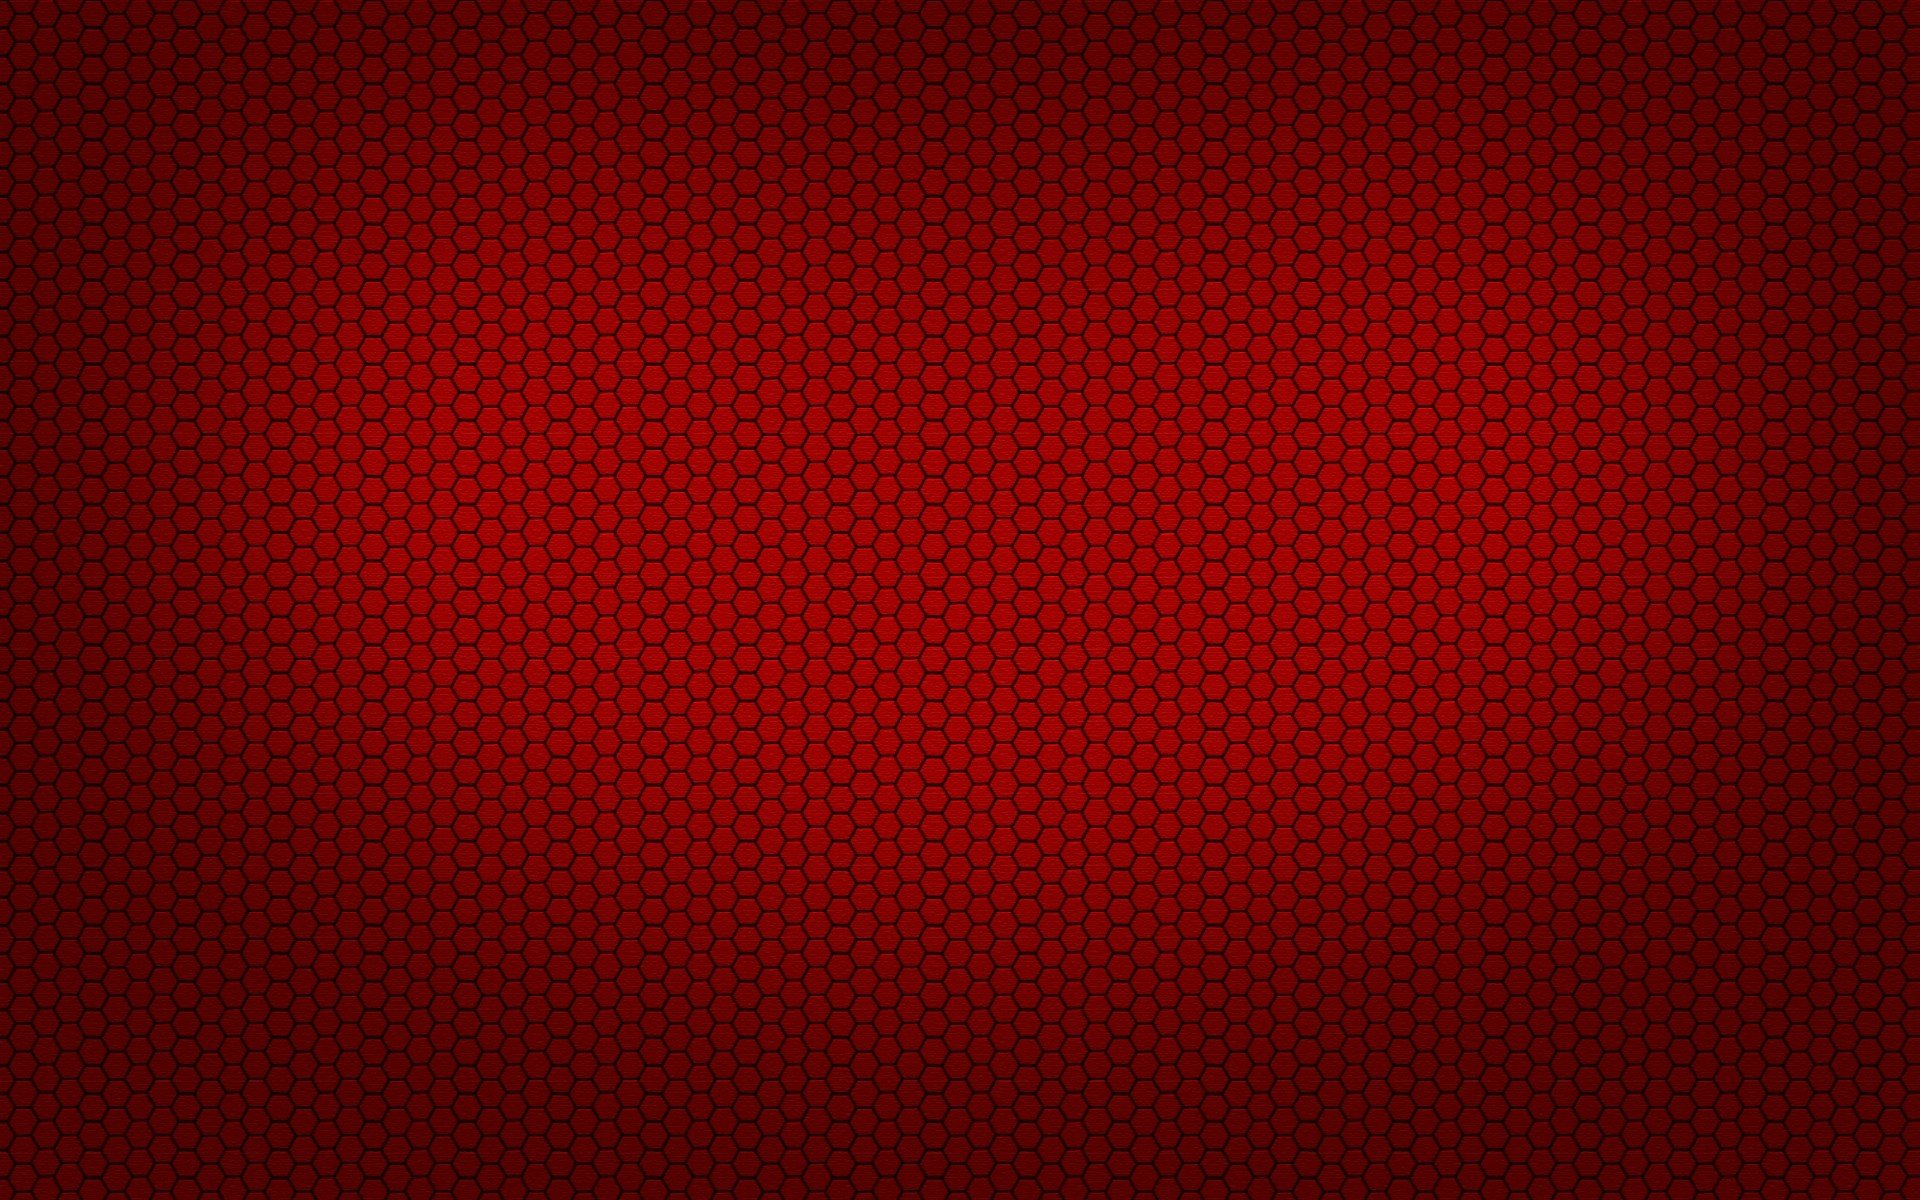 Free Download Dark Red Plain Background Daily Pics Update Hd Wallpapers Download 1920x1200 For Your Desktop Mobile Tablet Explore 49 Dark Red Background Wallpaper Dark Red Wallpapers Black And